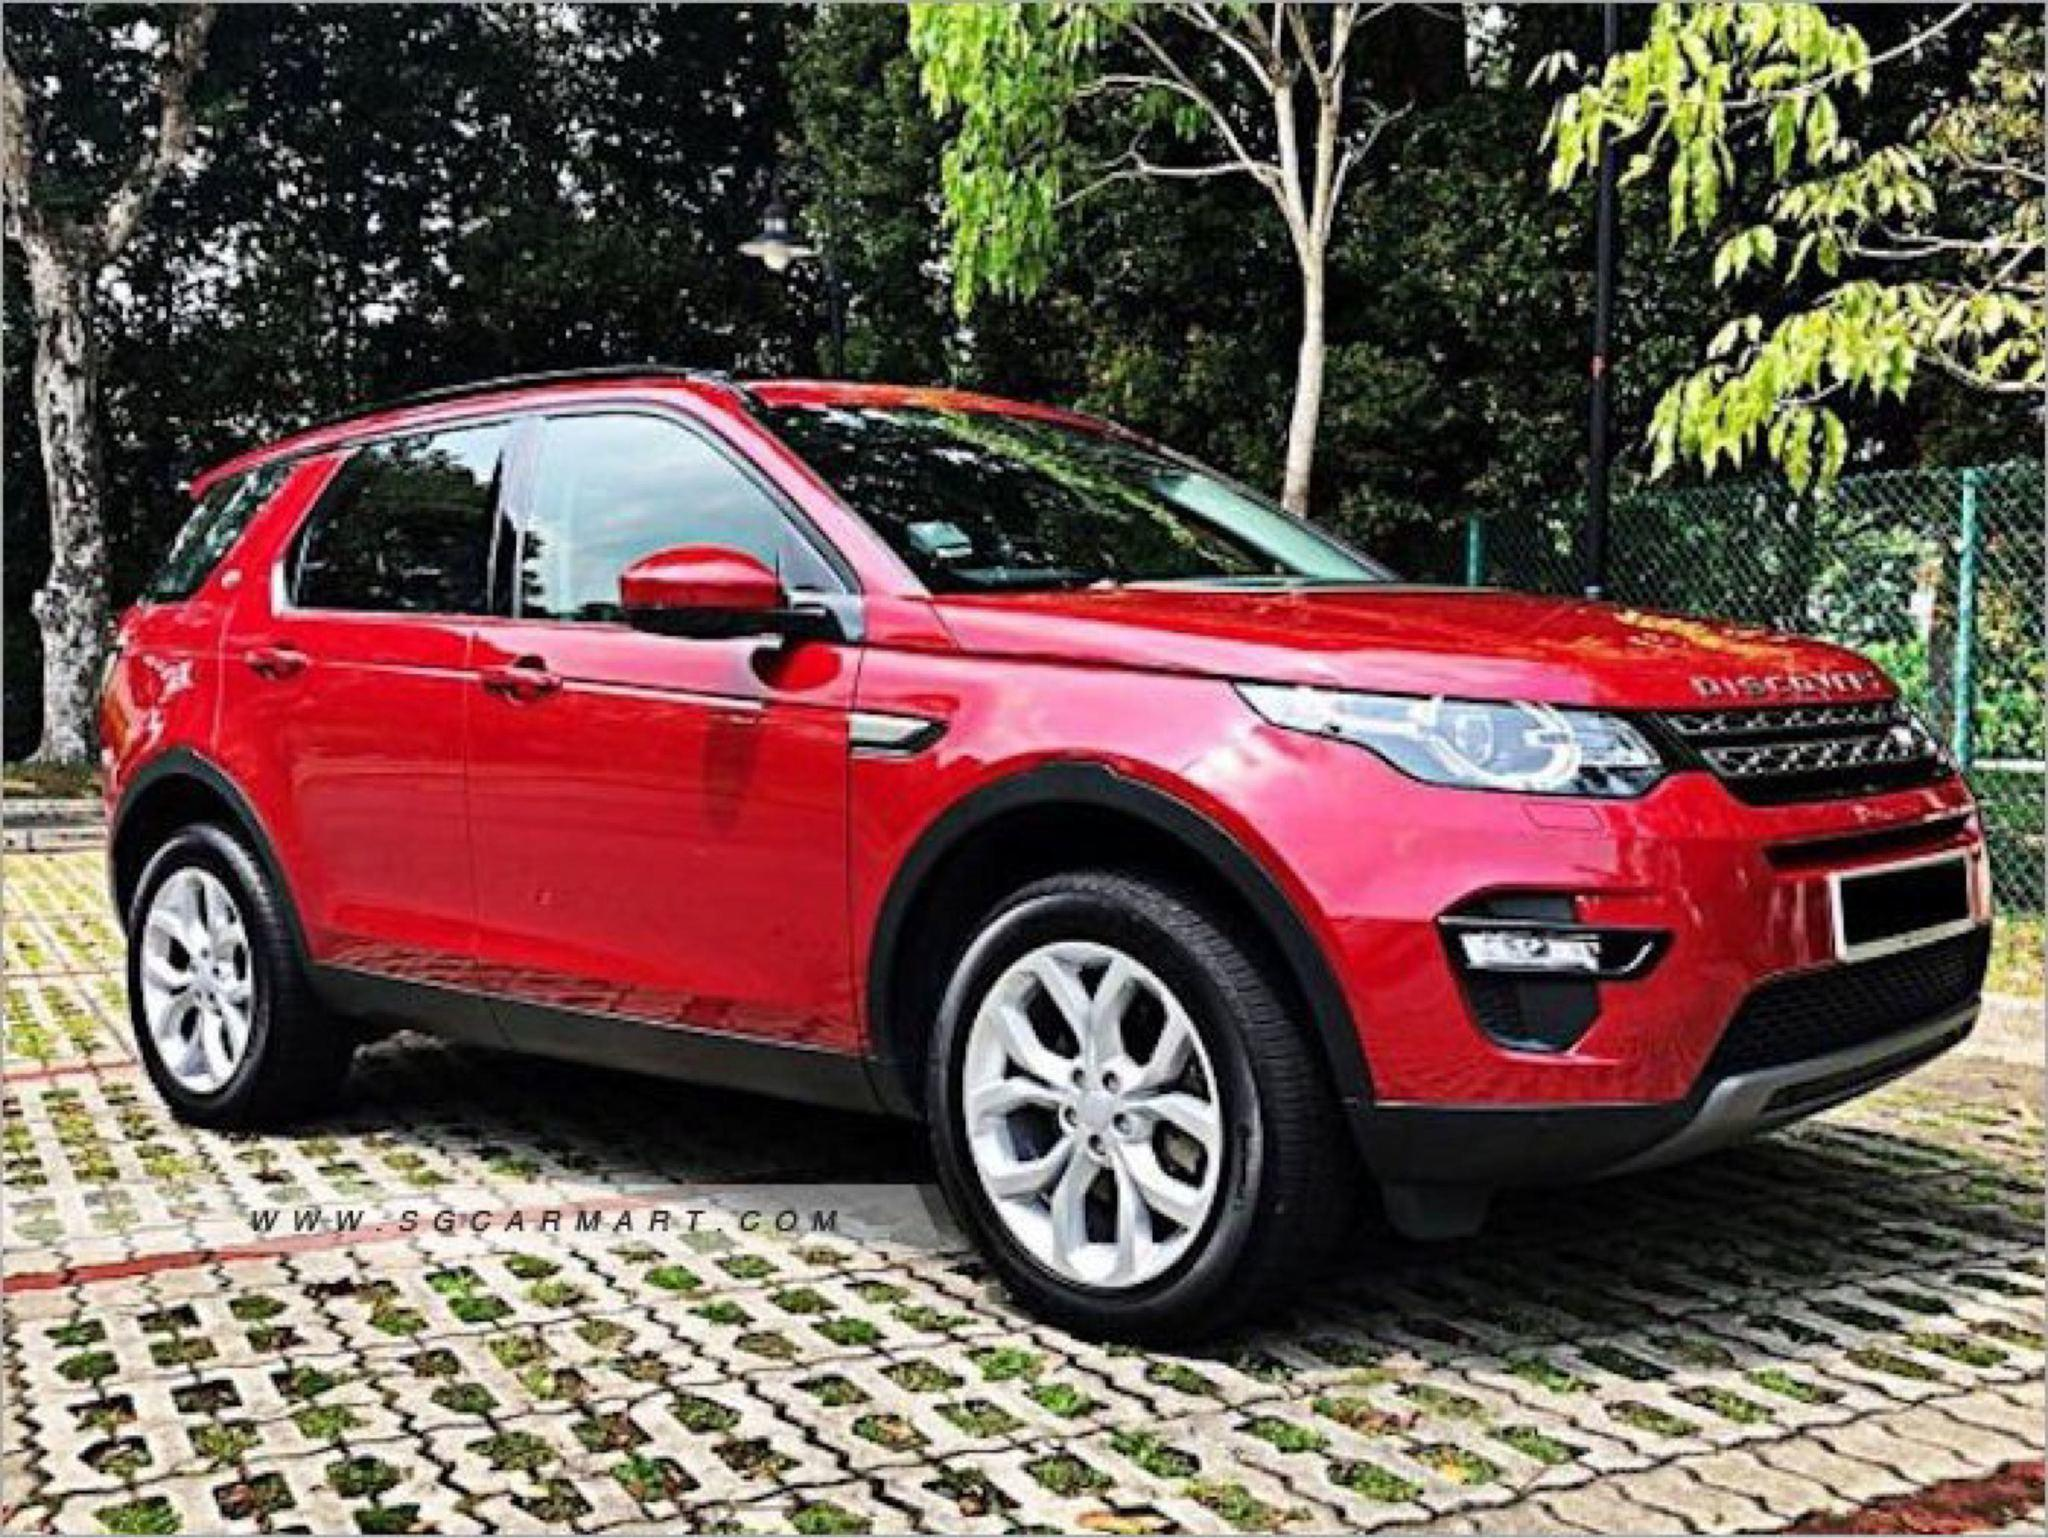 LAND ROVER DISCOVERY SPORT 2.0P 7 SEATER S